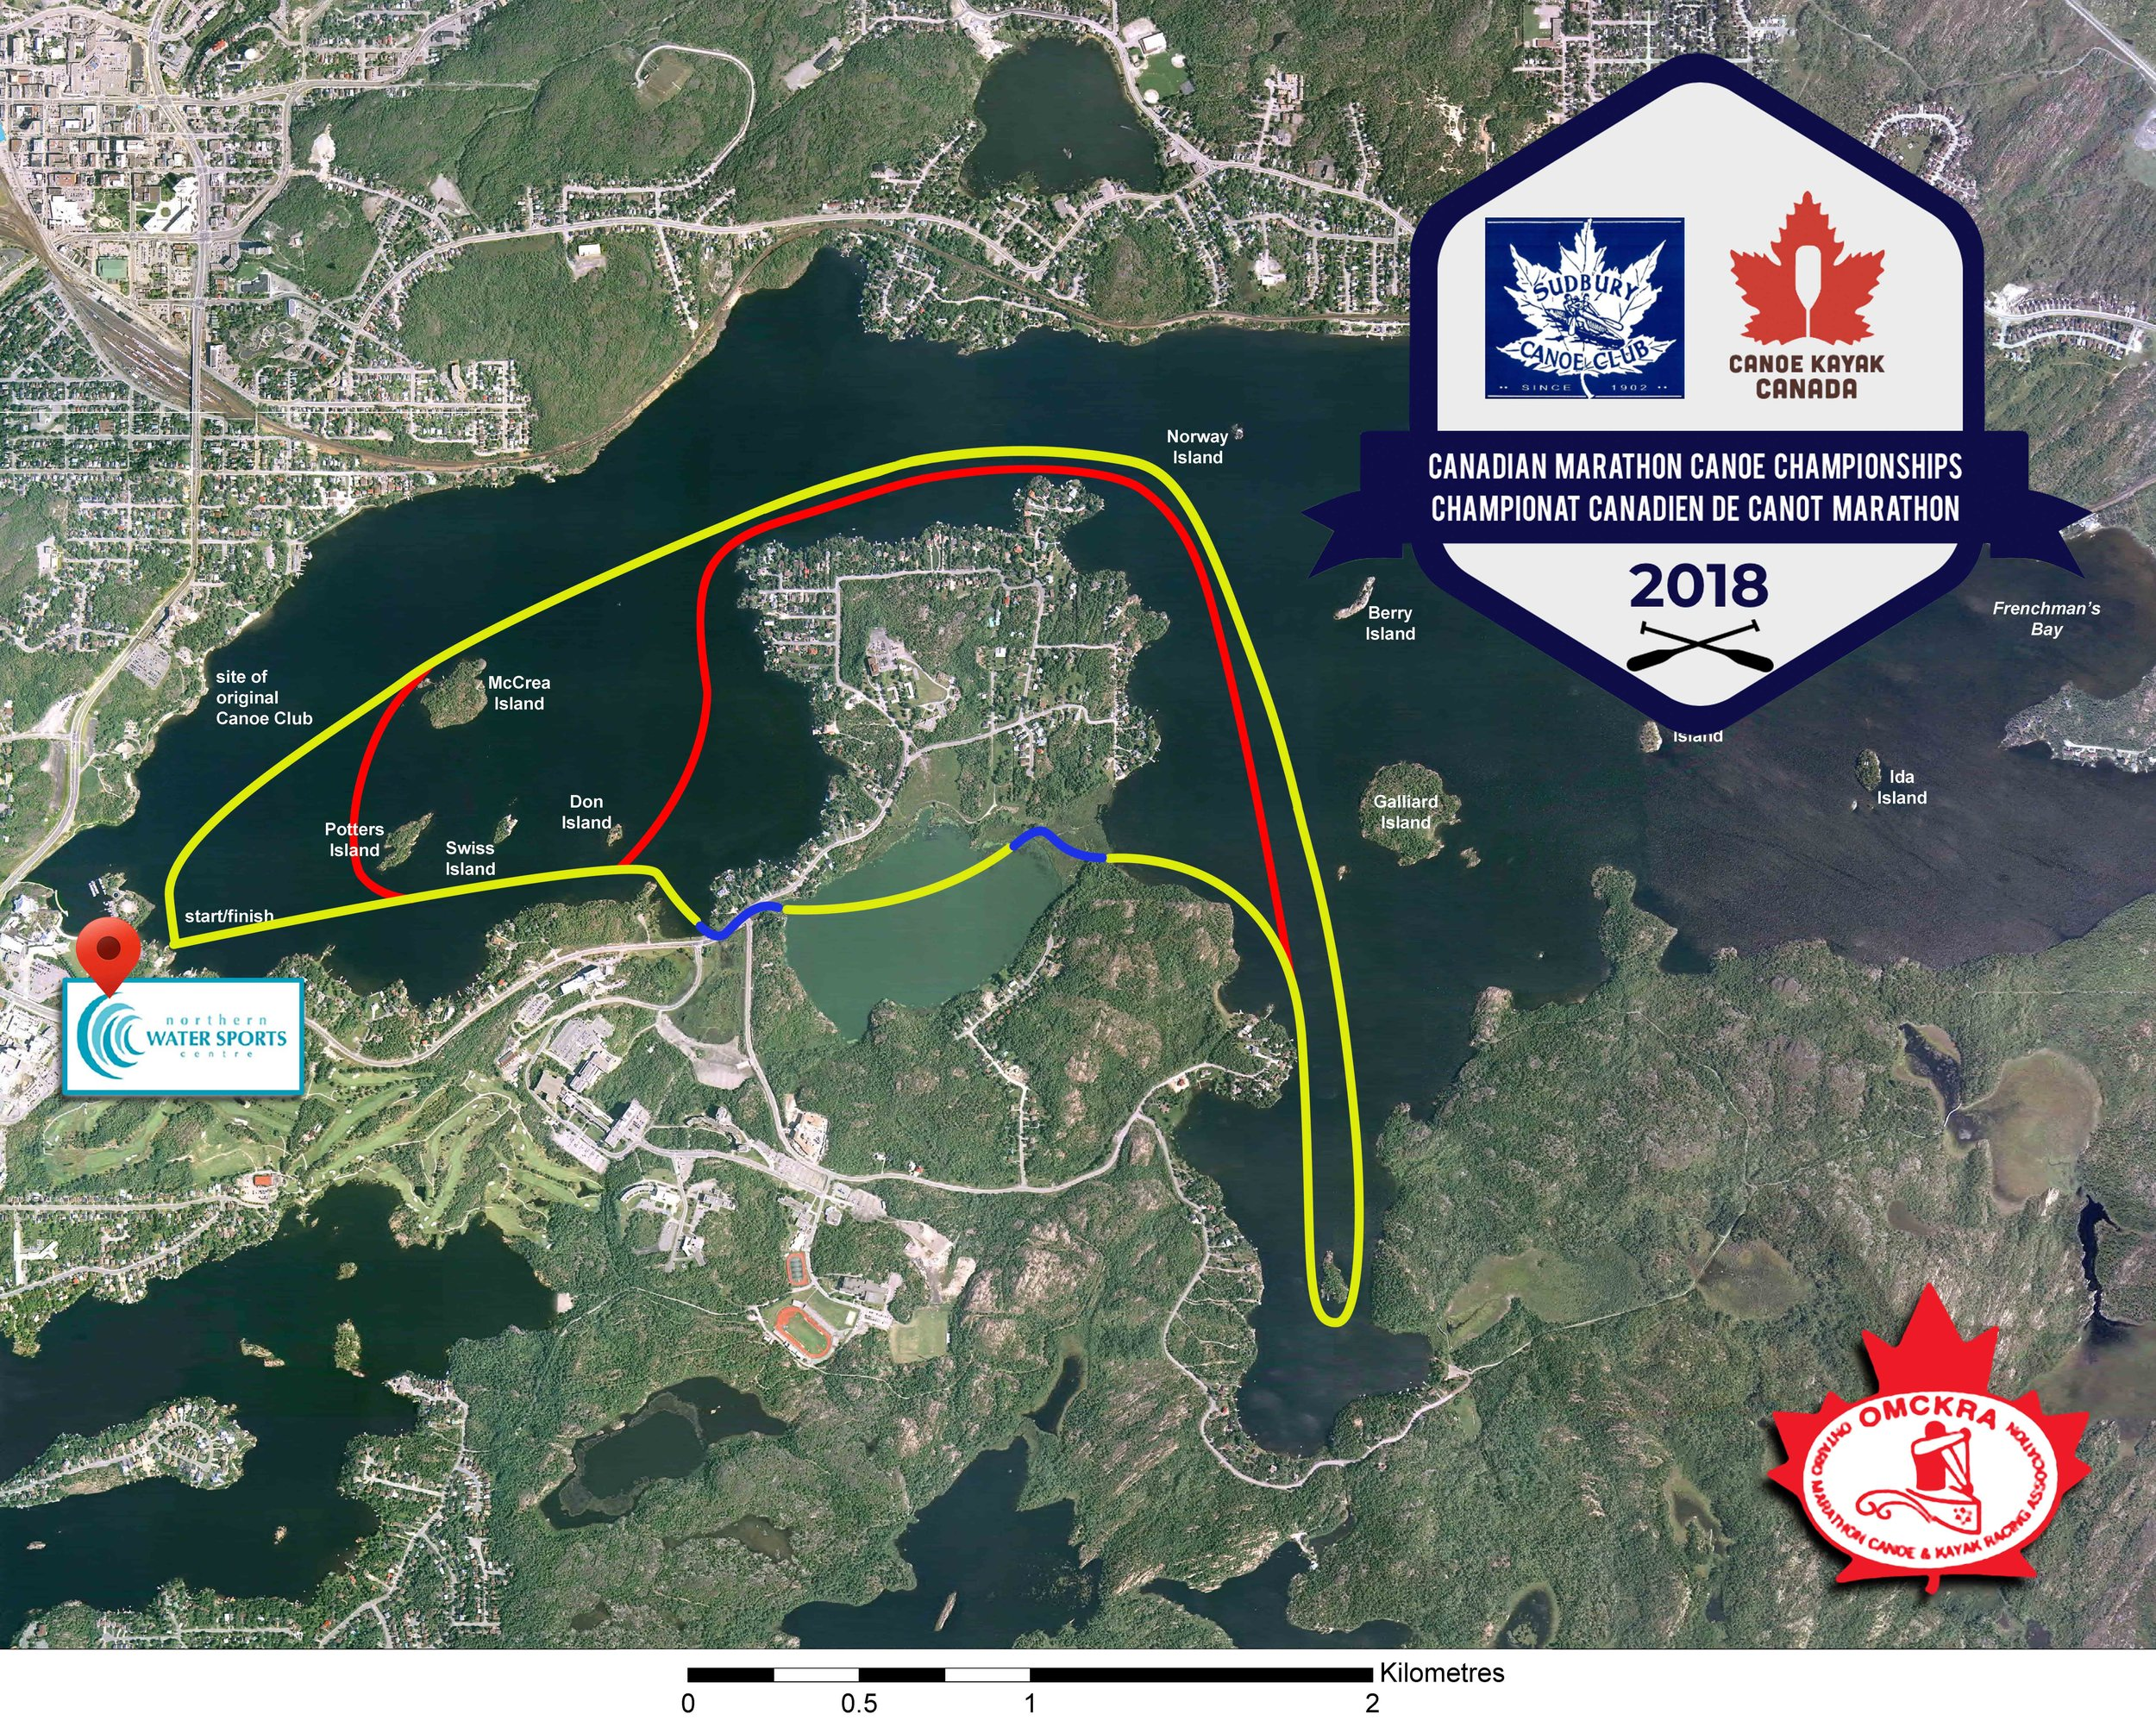 Yellow = Norman Course  Red = Portage Bypass  1 loop = 10km  2 Loops = 20km (take short red to repeat loop)